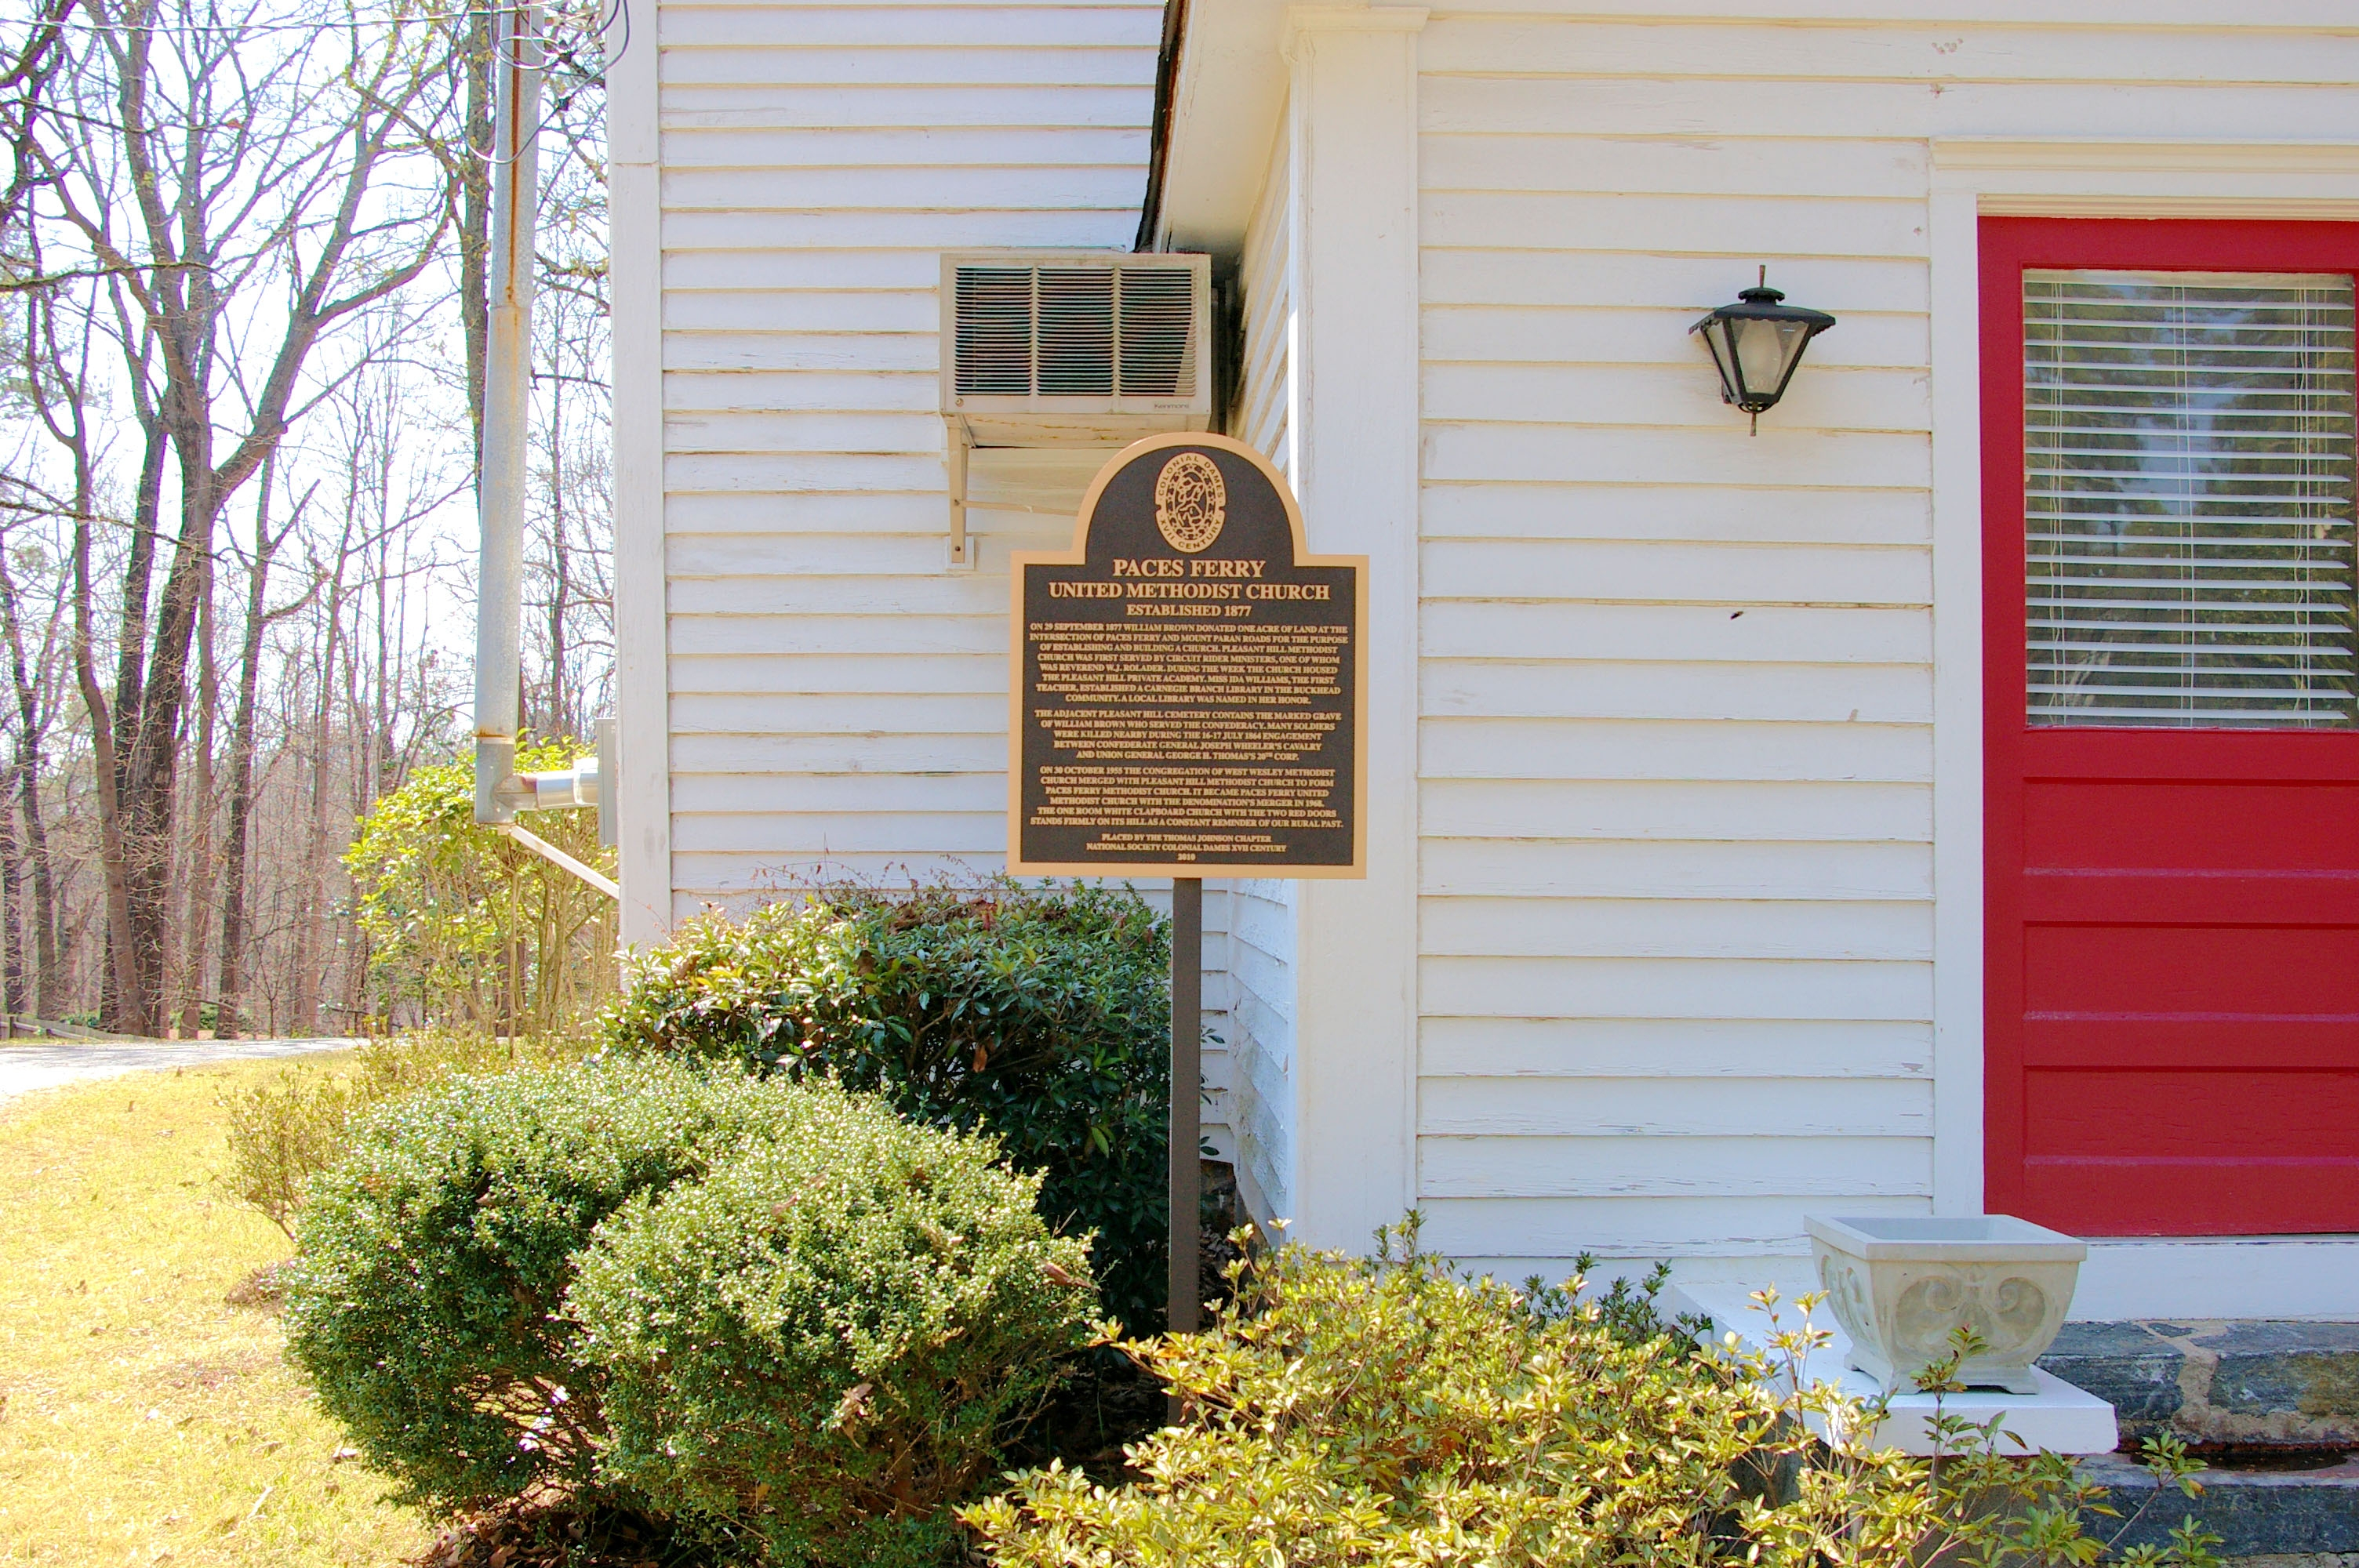 Paces Ferry United Methodist Church Marker